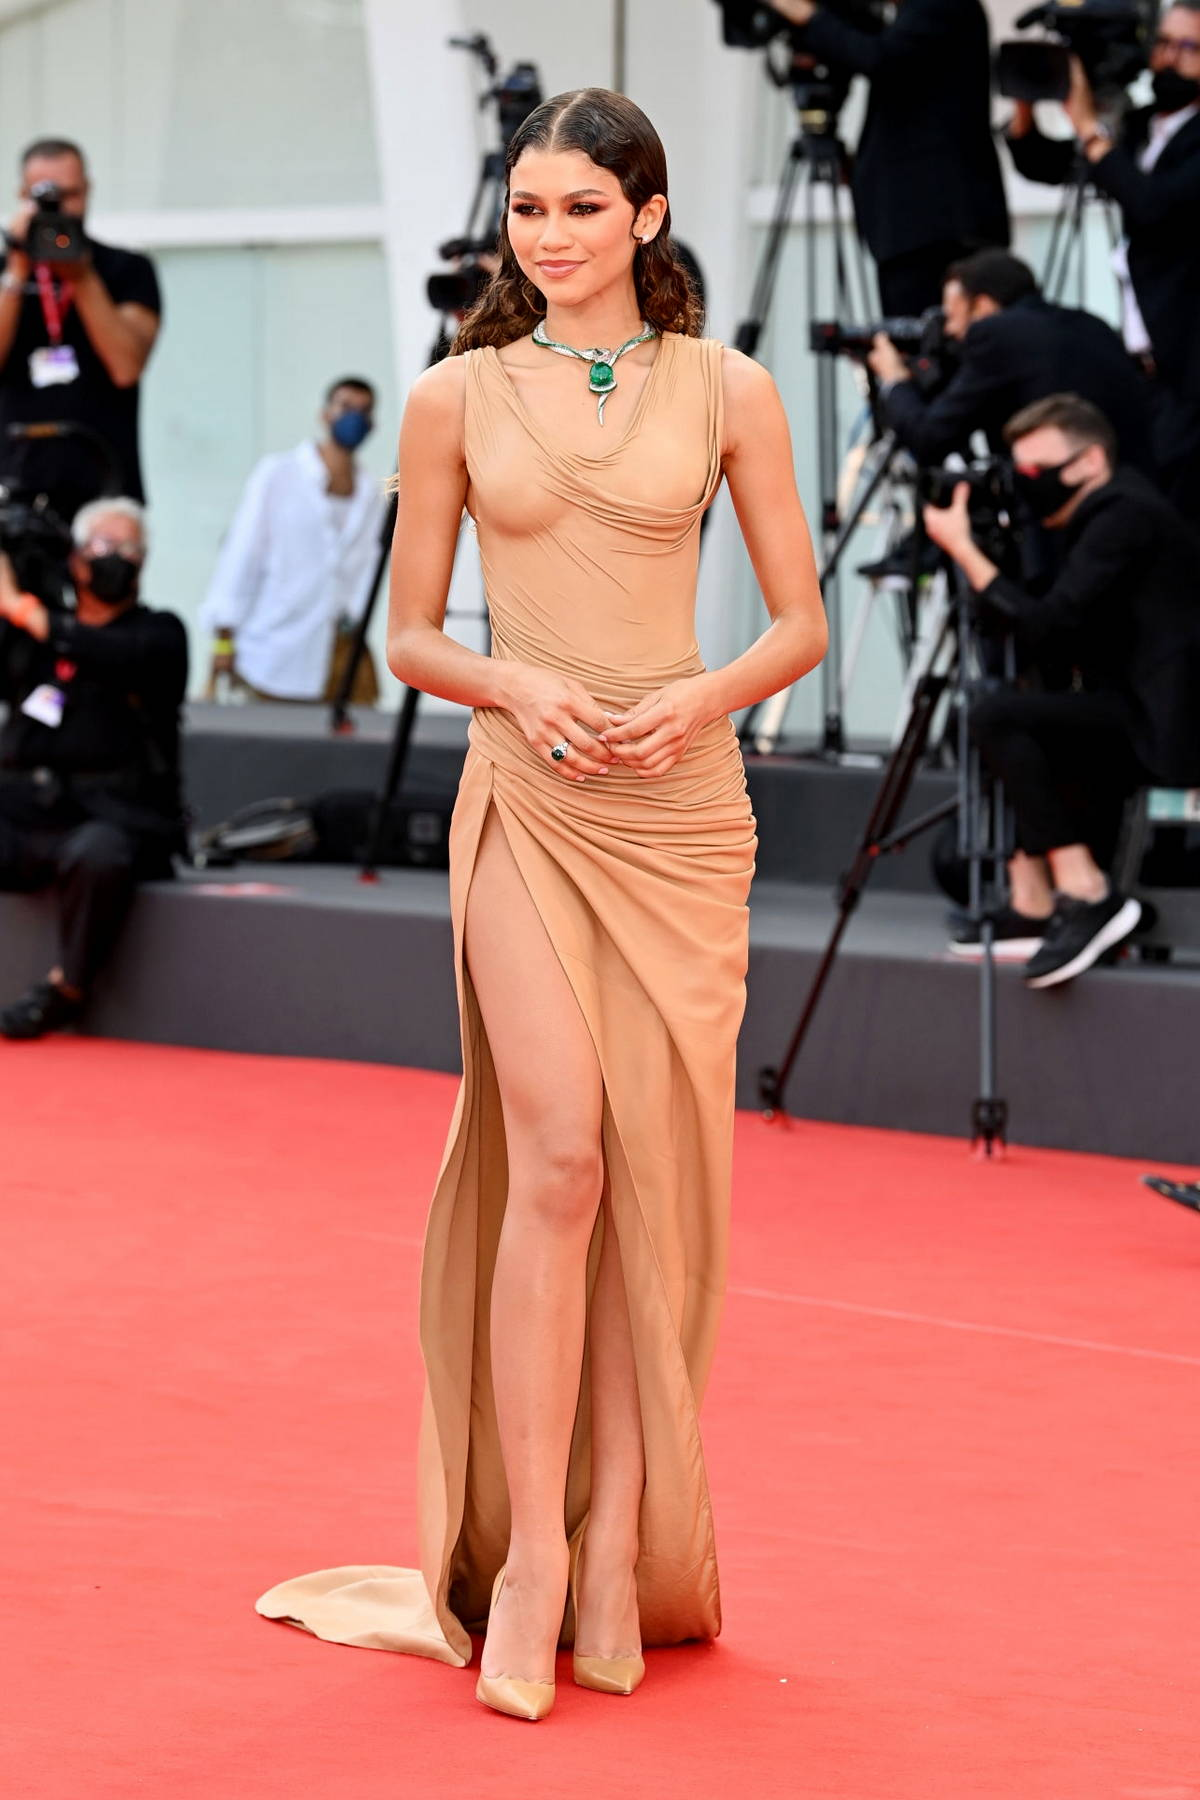 Zendaya attends the Premiere of 'Dune' during the 78th Venice International Film Festival in Venice, Italy